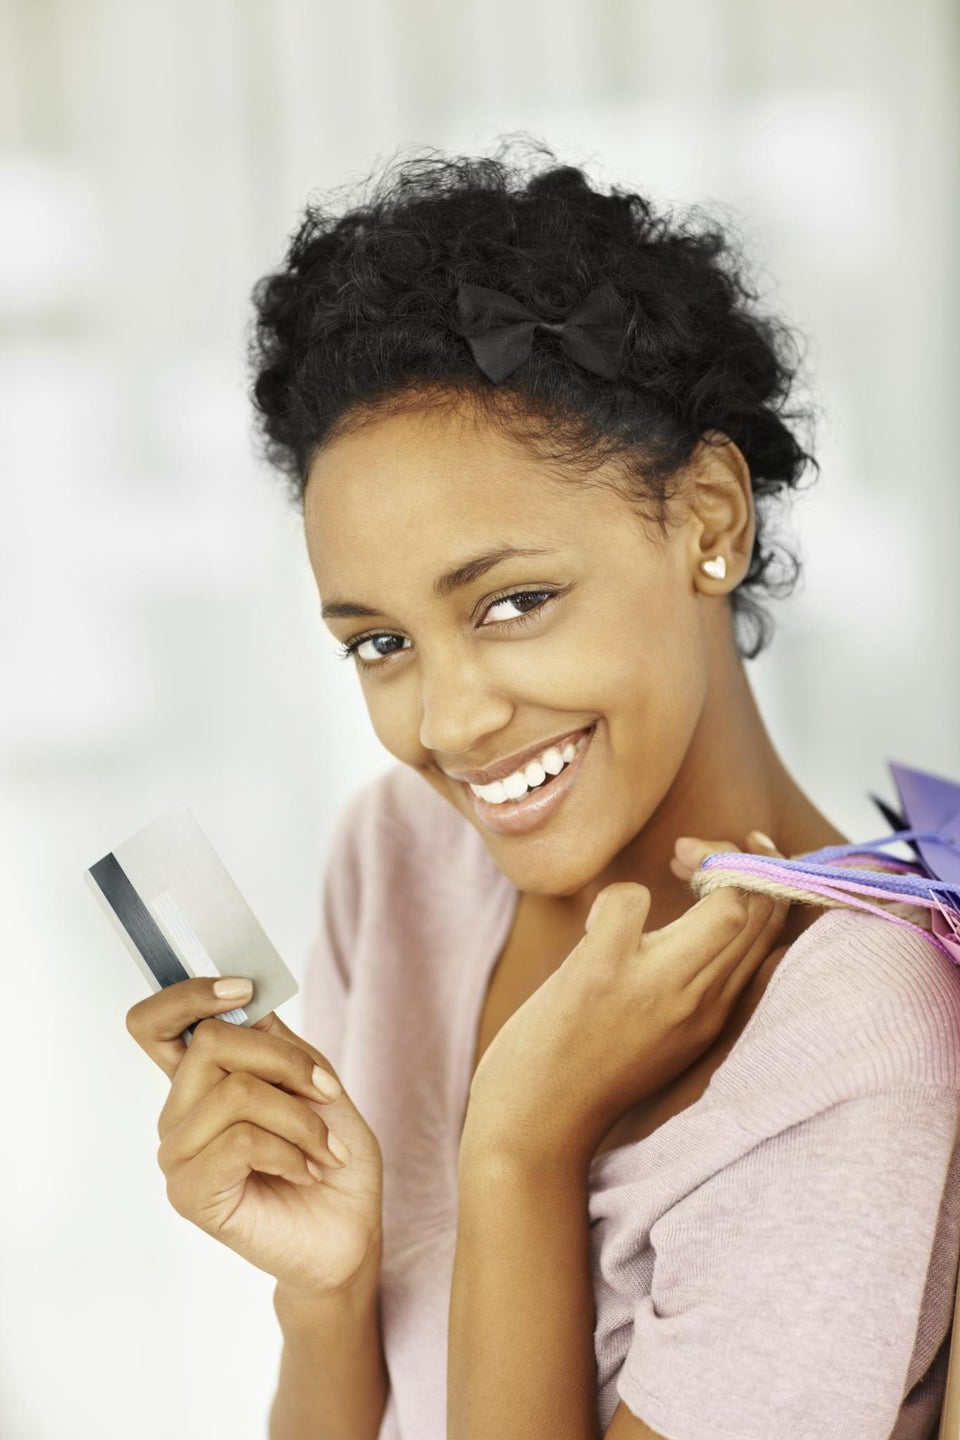 From Broke to Blessed: Increase Your Credit Score